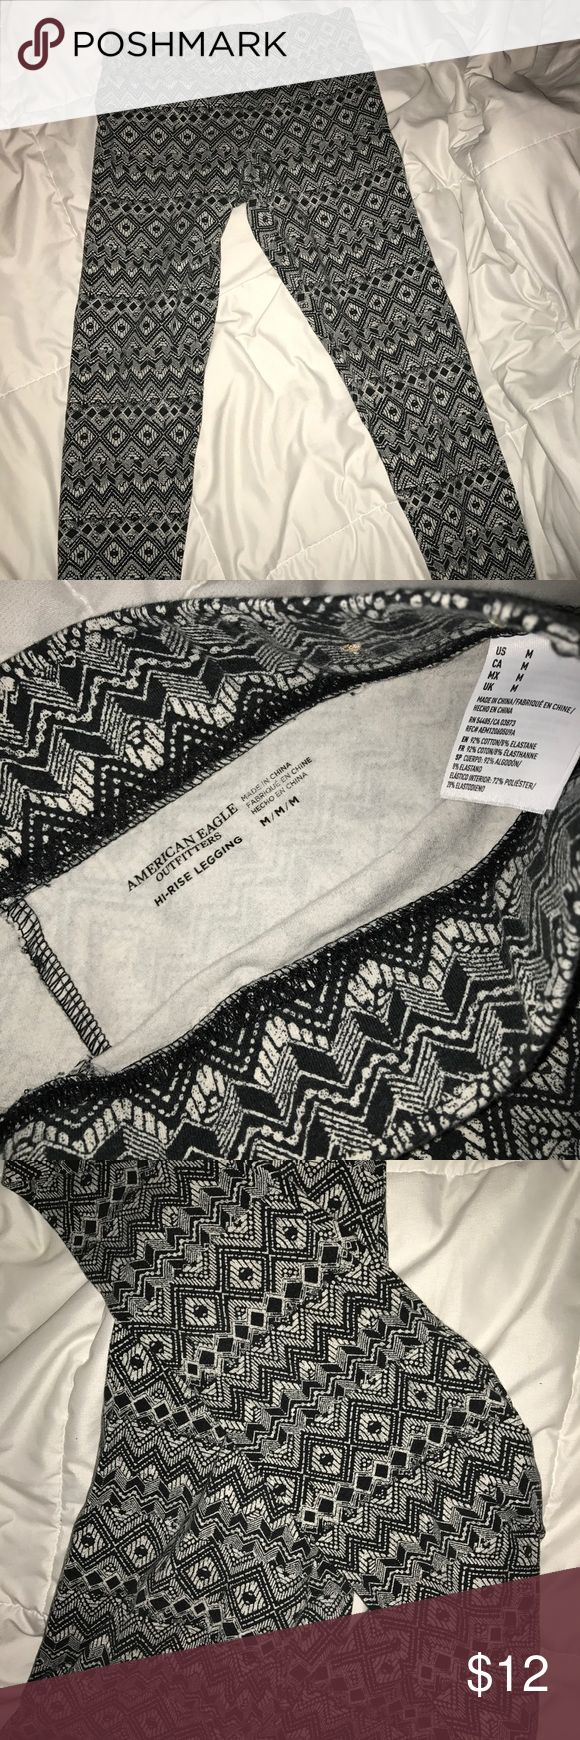 American Eagle Tribal Leggings Size medium black and white tribal leggings. Super comfortable ☺️ worn twice American Eagle Outfitters Pants Leggings